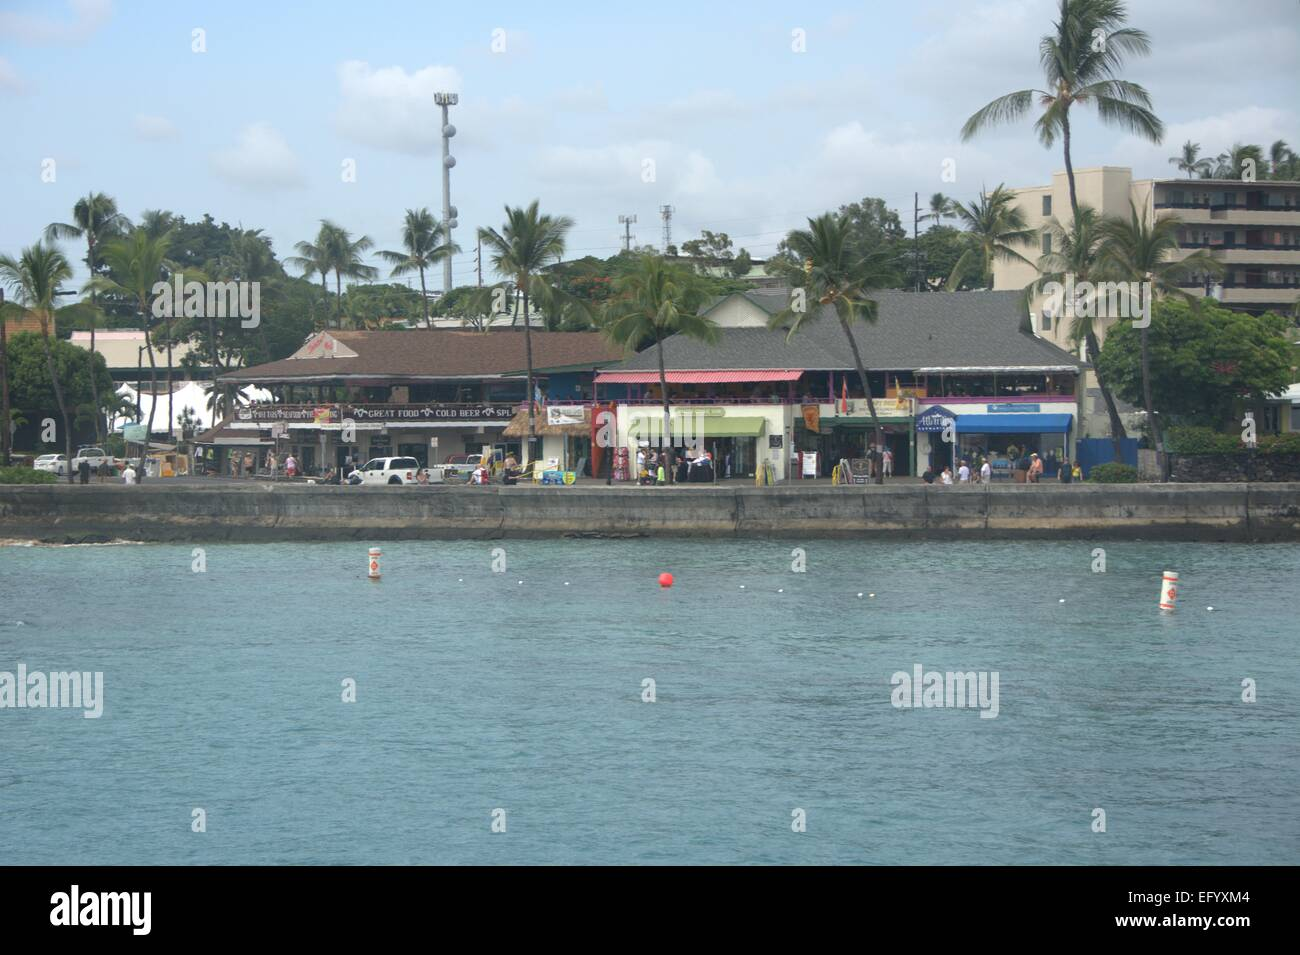 Hilo town from the water - Stock Image